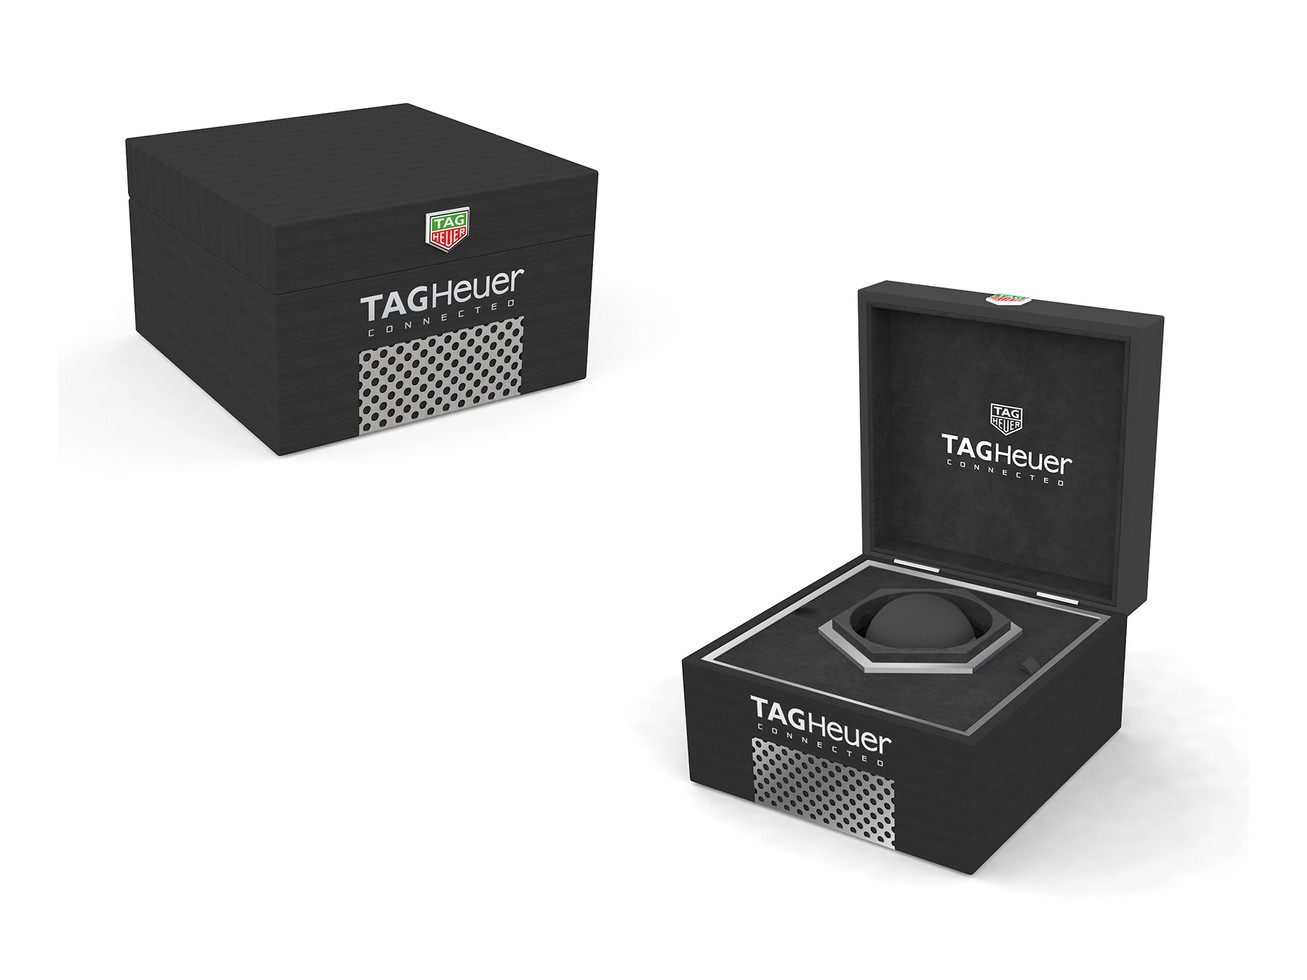 Connected Watch Packaging